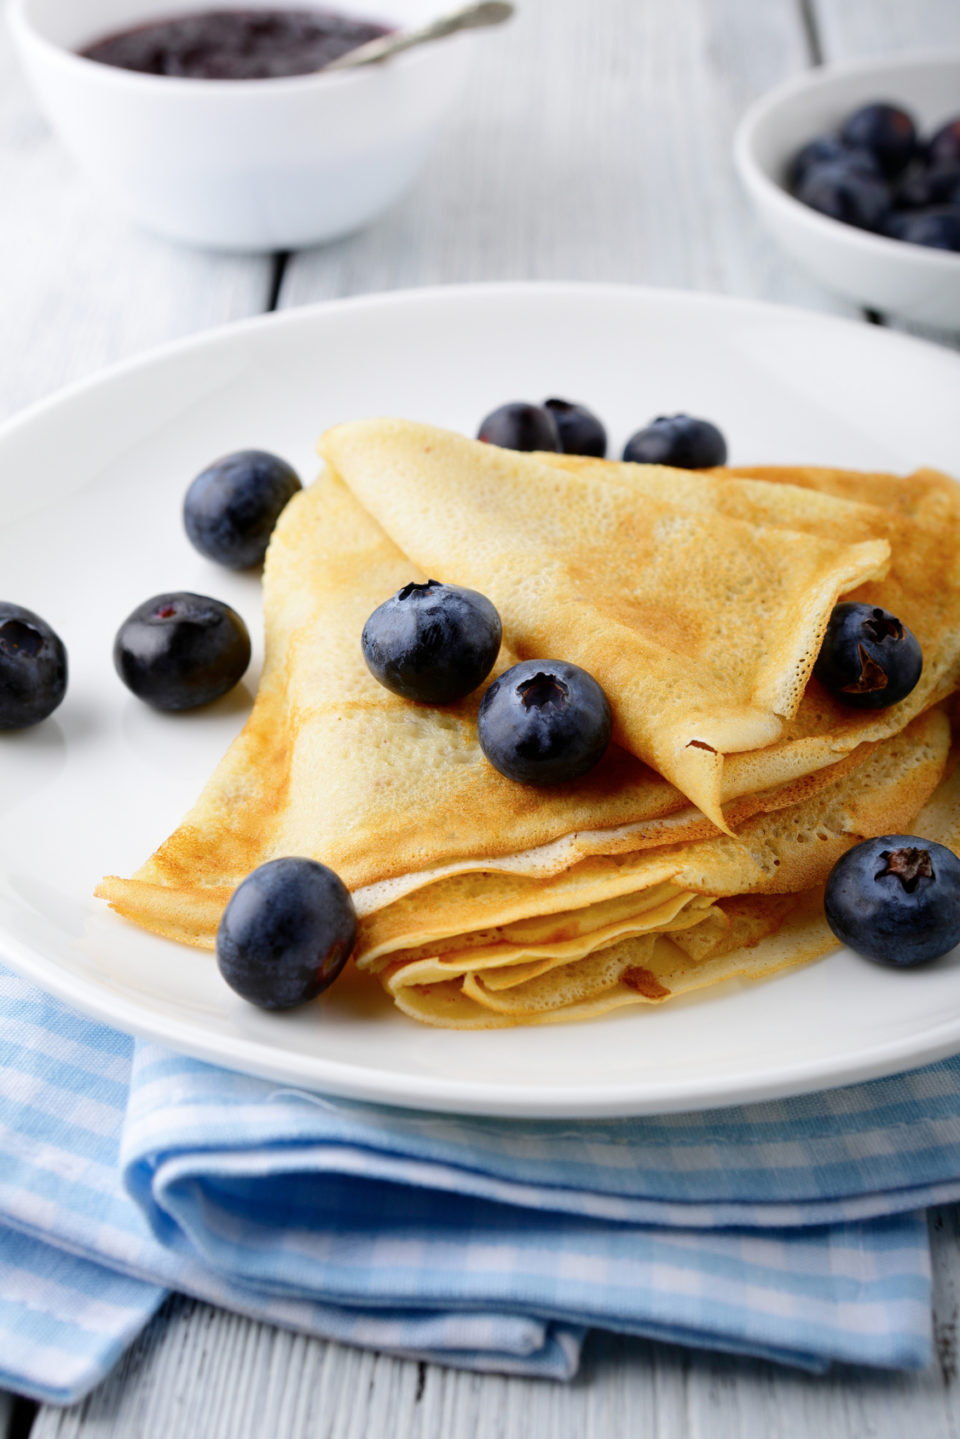 Sweet pancakes with berries. Tasty Food